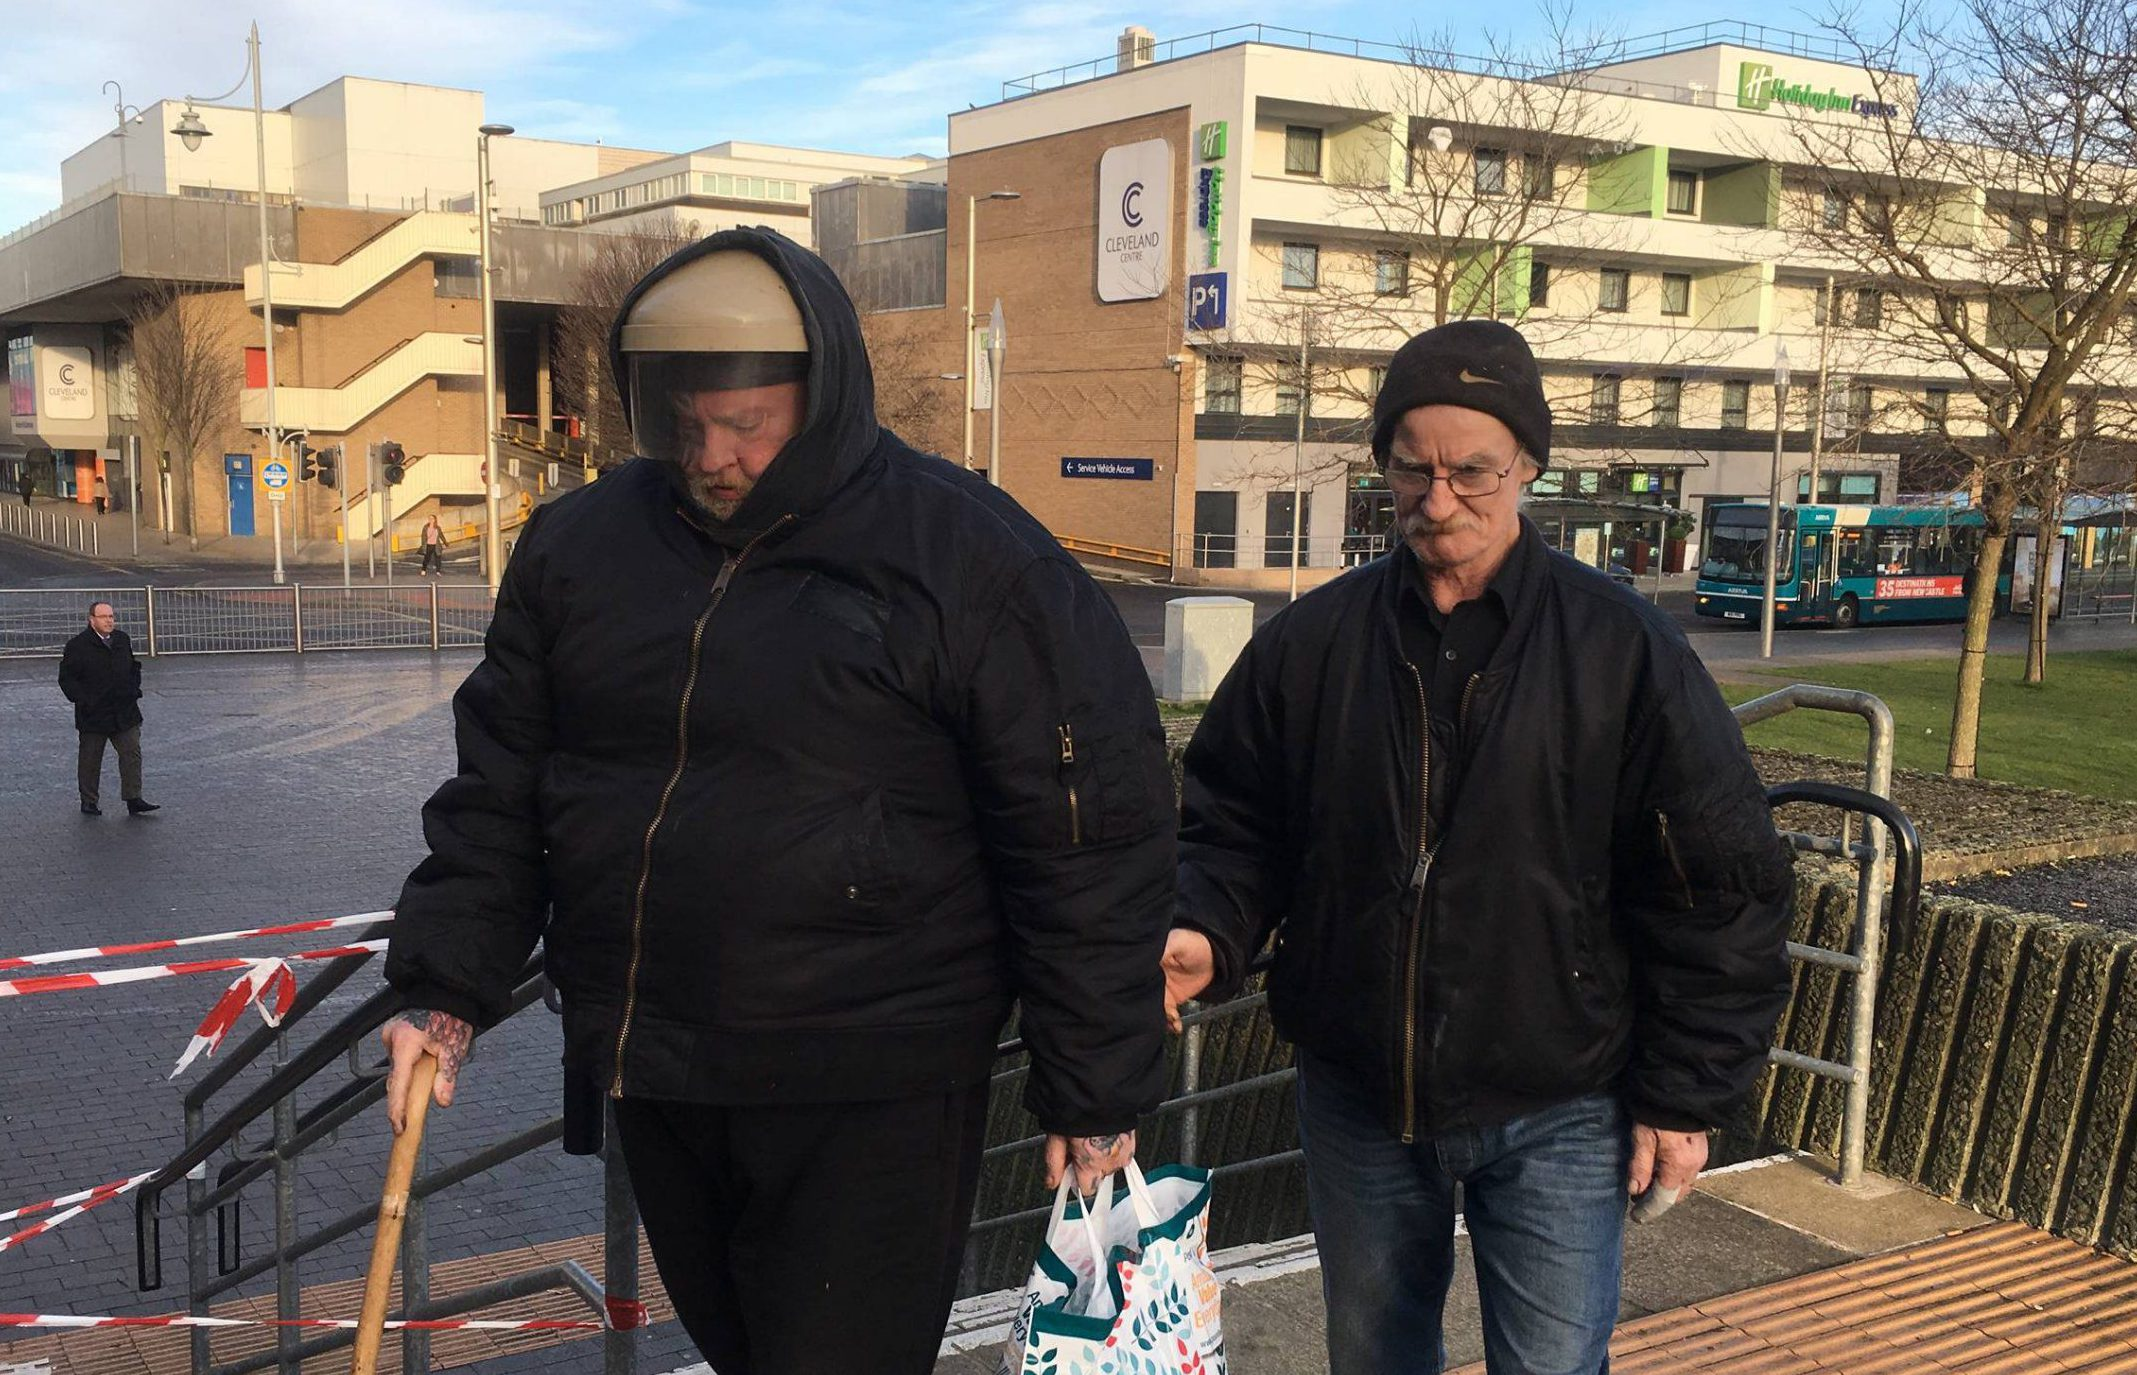 Dated: 01/03/2017 Richard Finch (left), 60, and Michael Heathcock, 59, arrive at Teesside Court this morning (WED) where they were both jailed for four months after admitting to animal cruelty after Heathcock's dog Scamp was found buried alive in woodlands with a nail through its head. See story and video by North News